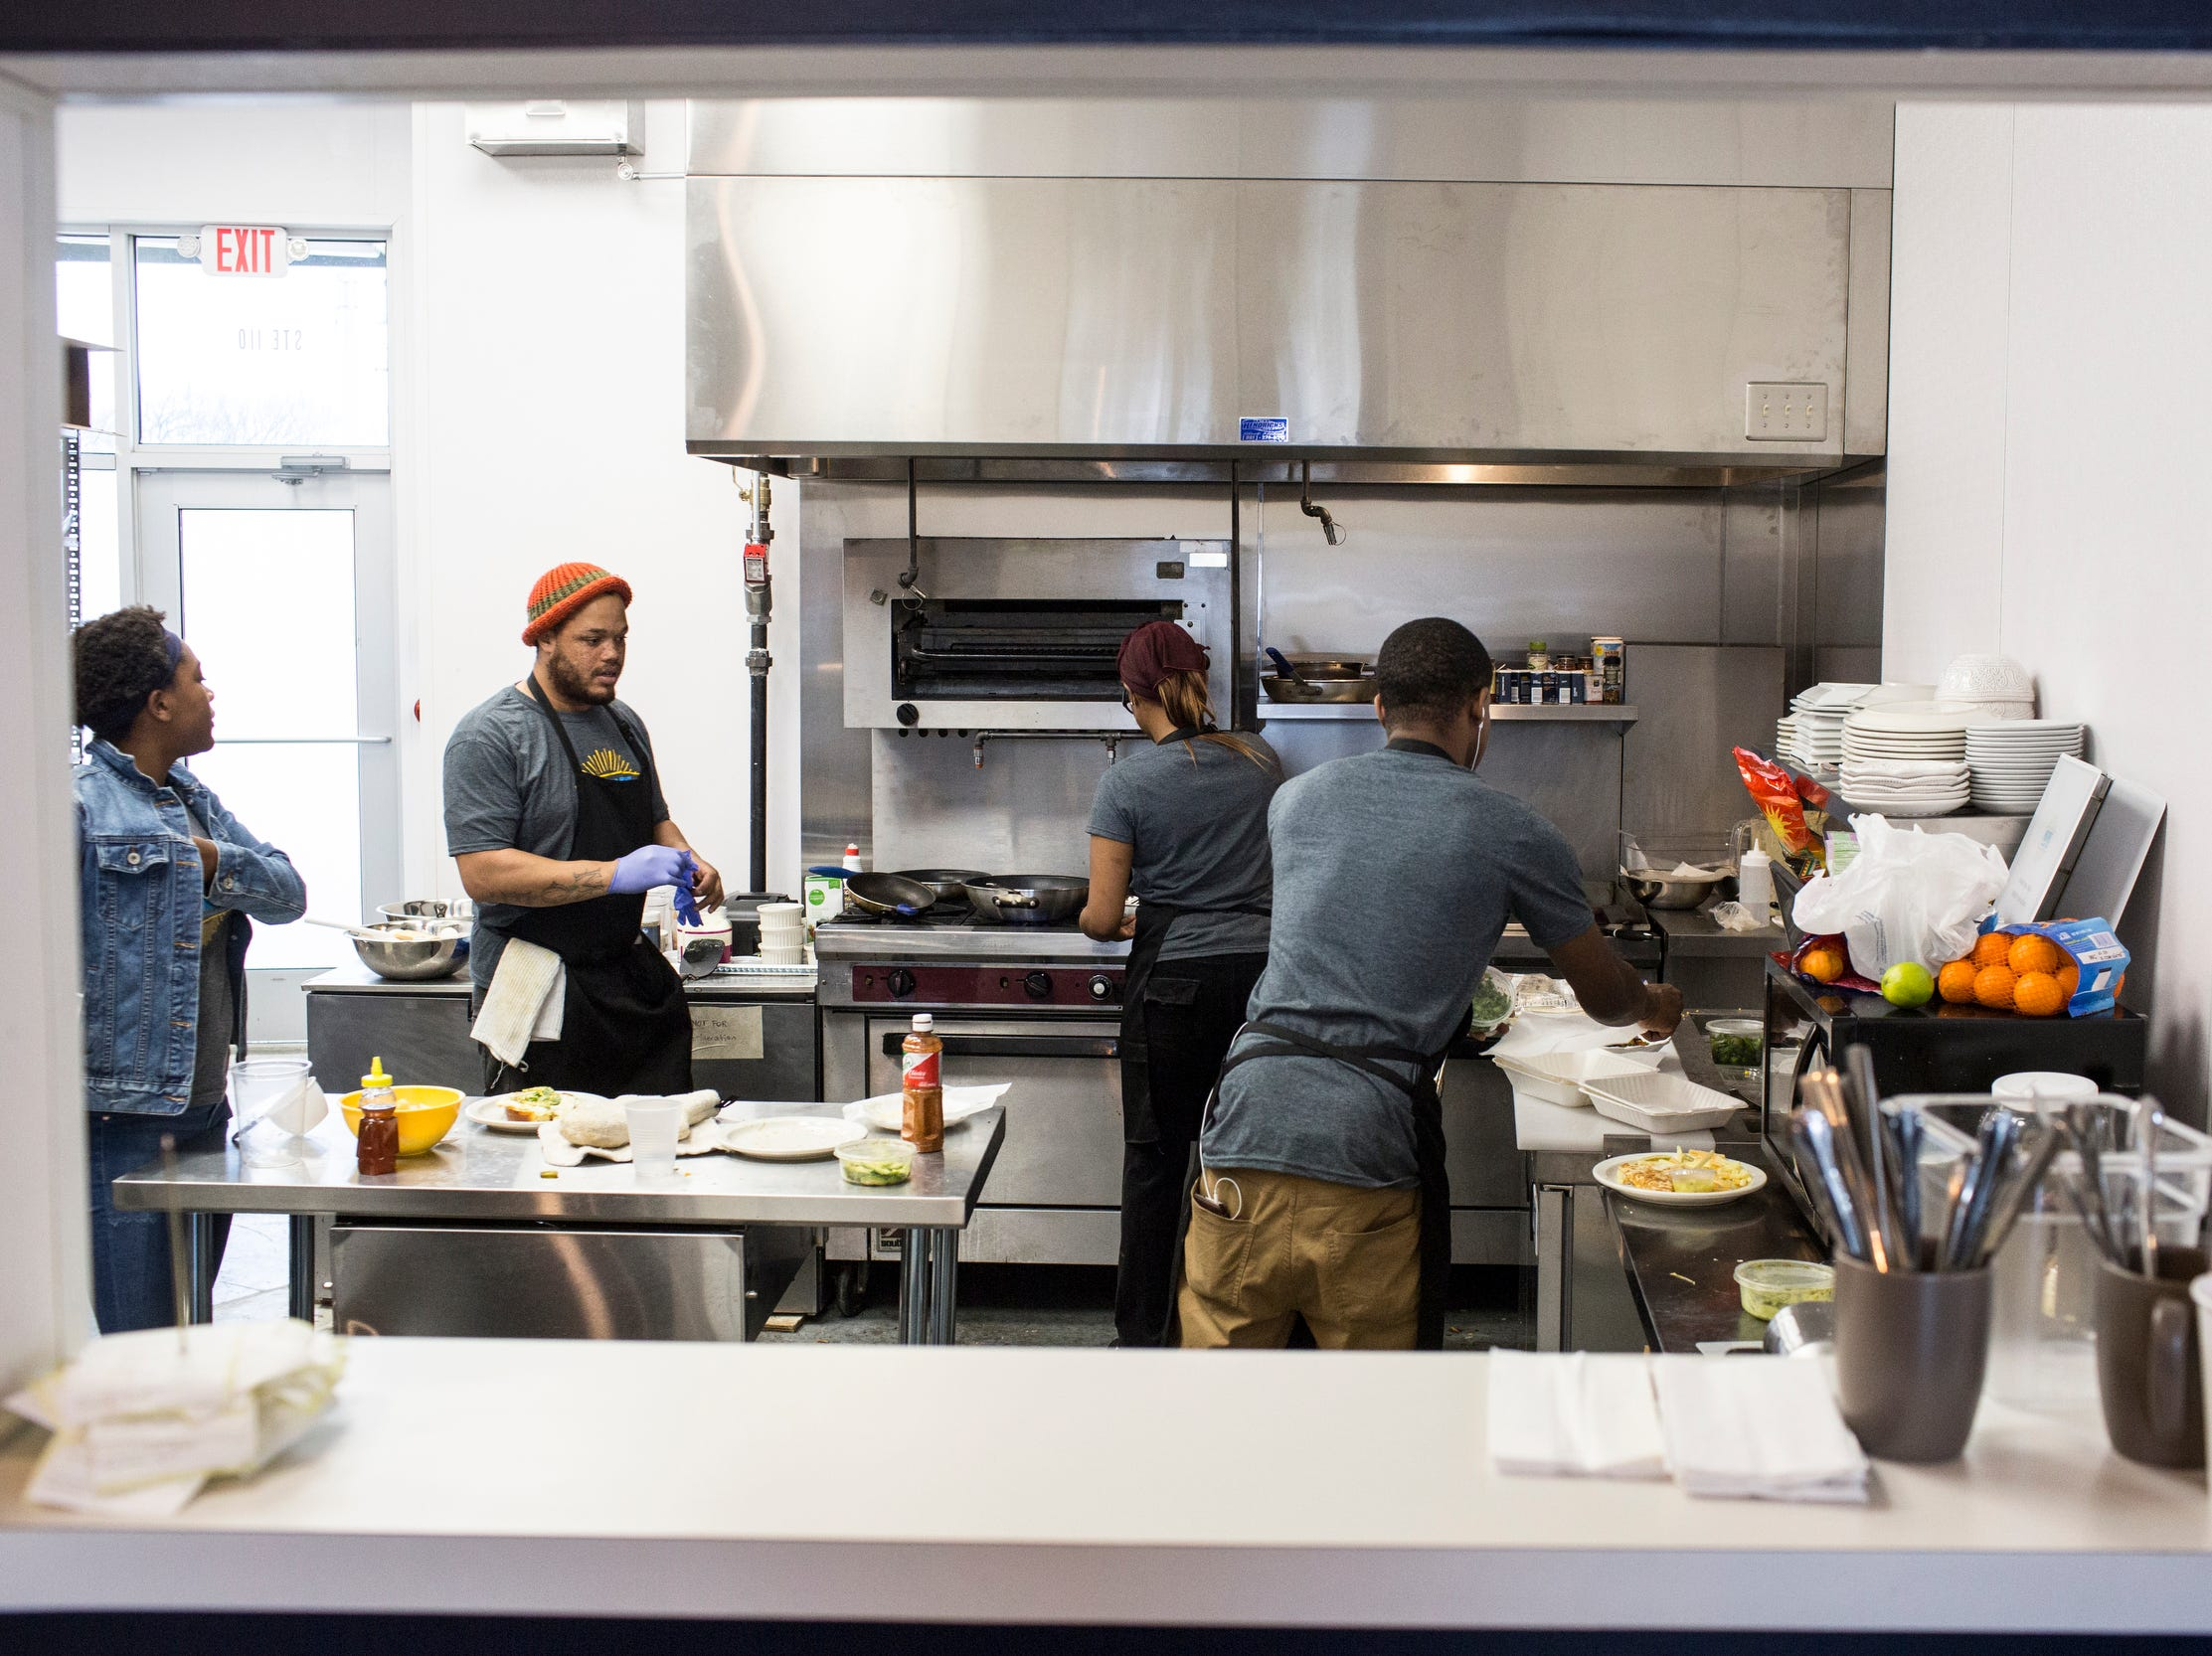 December 23 2018 - People work in the kitchen at Inspire Community Cafe during the final of three friends & family soft openings before the cafe opens January 4th.